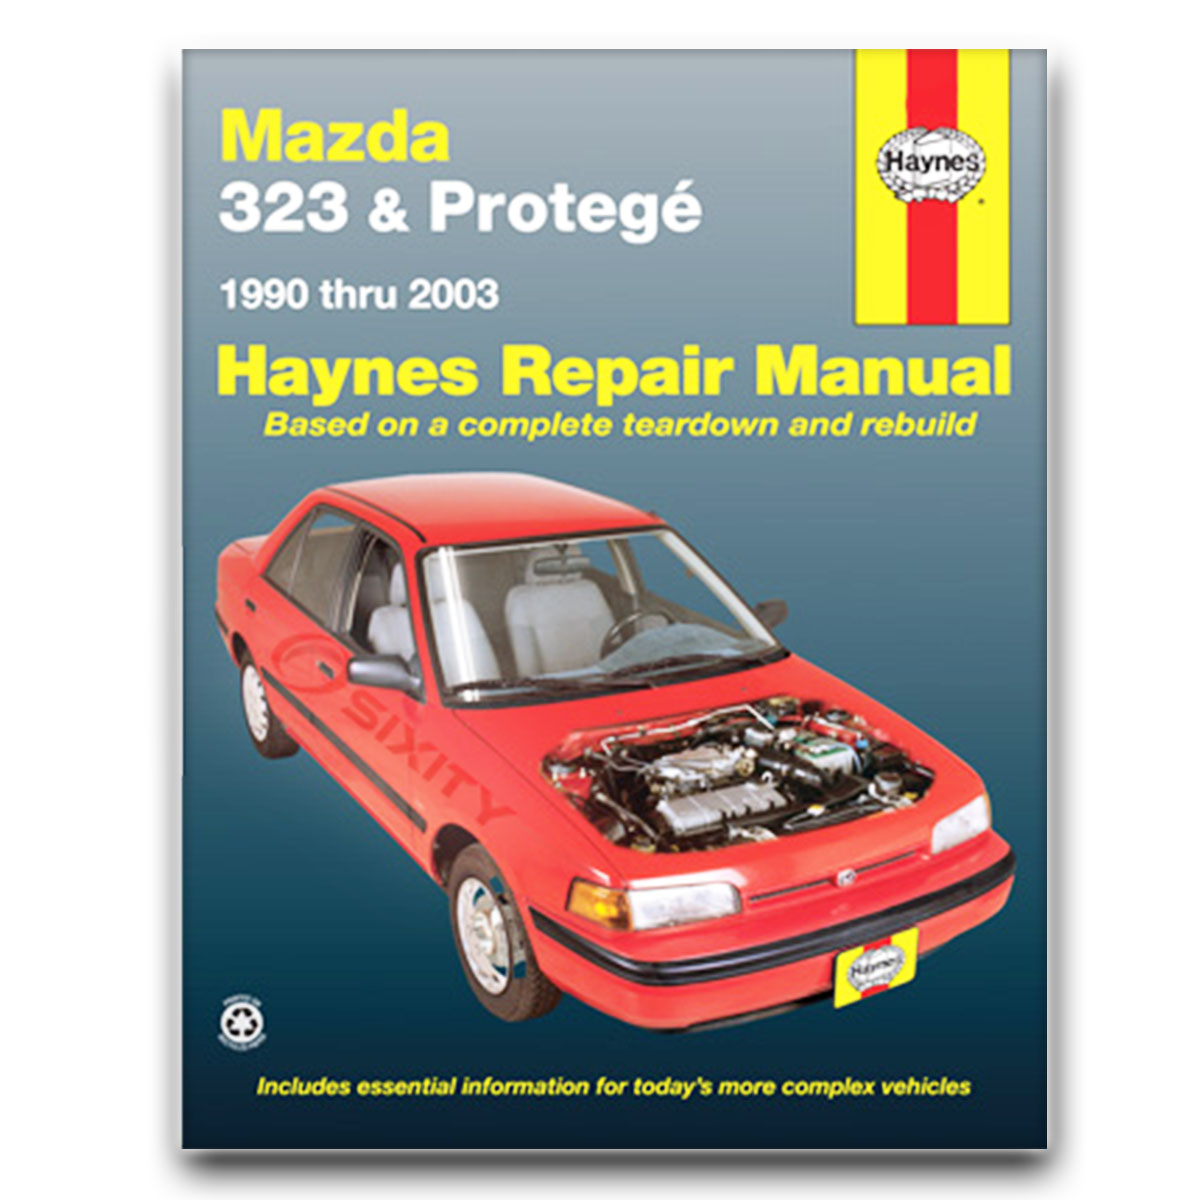 Haynes Repair Manual 61015 for Mazda 323 Protege 90-03 Shop Service Garage  px